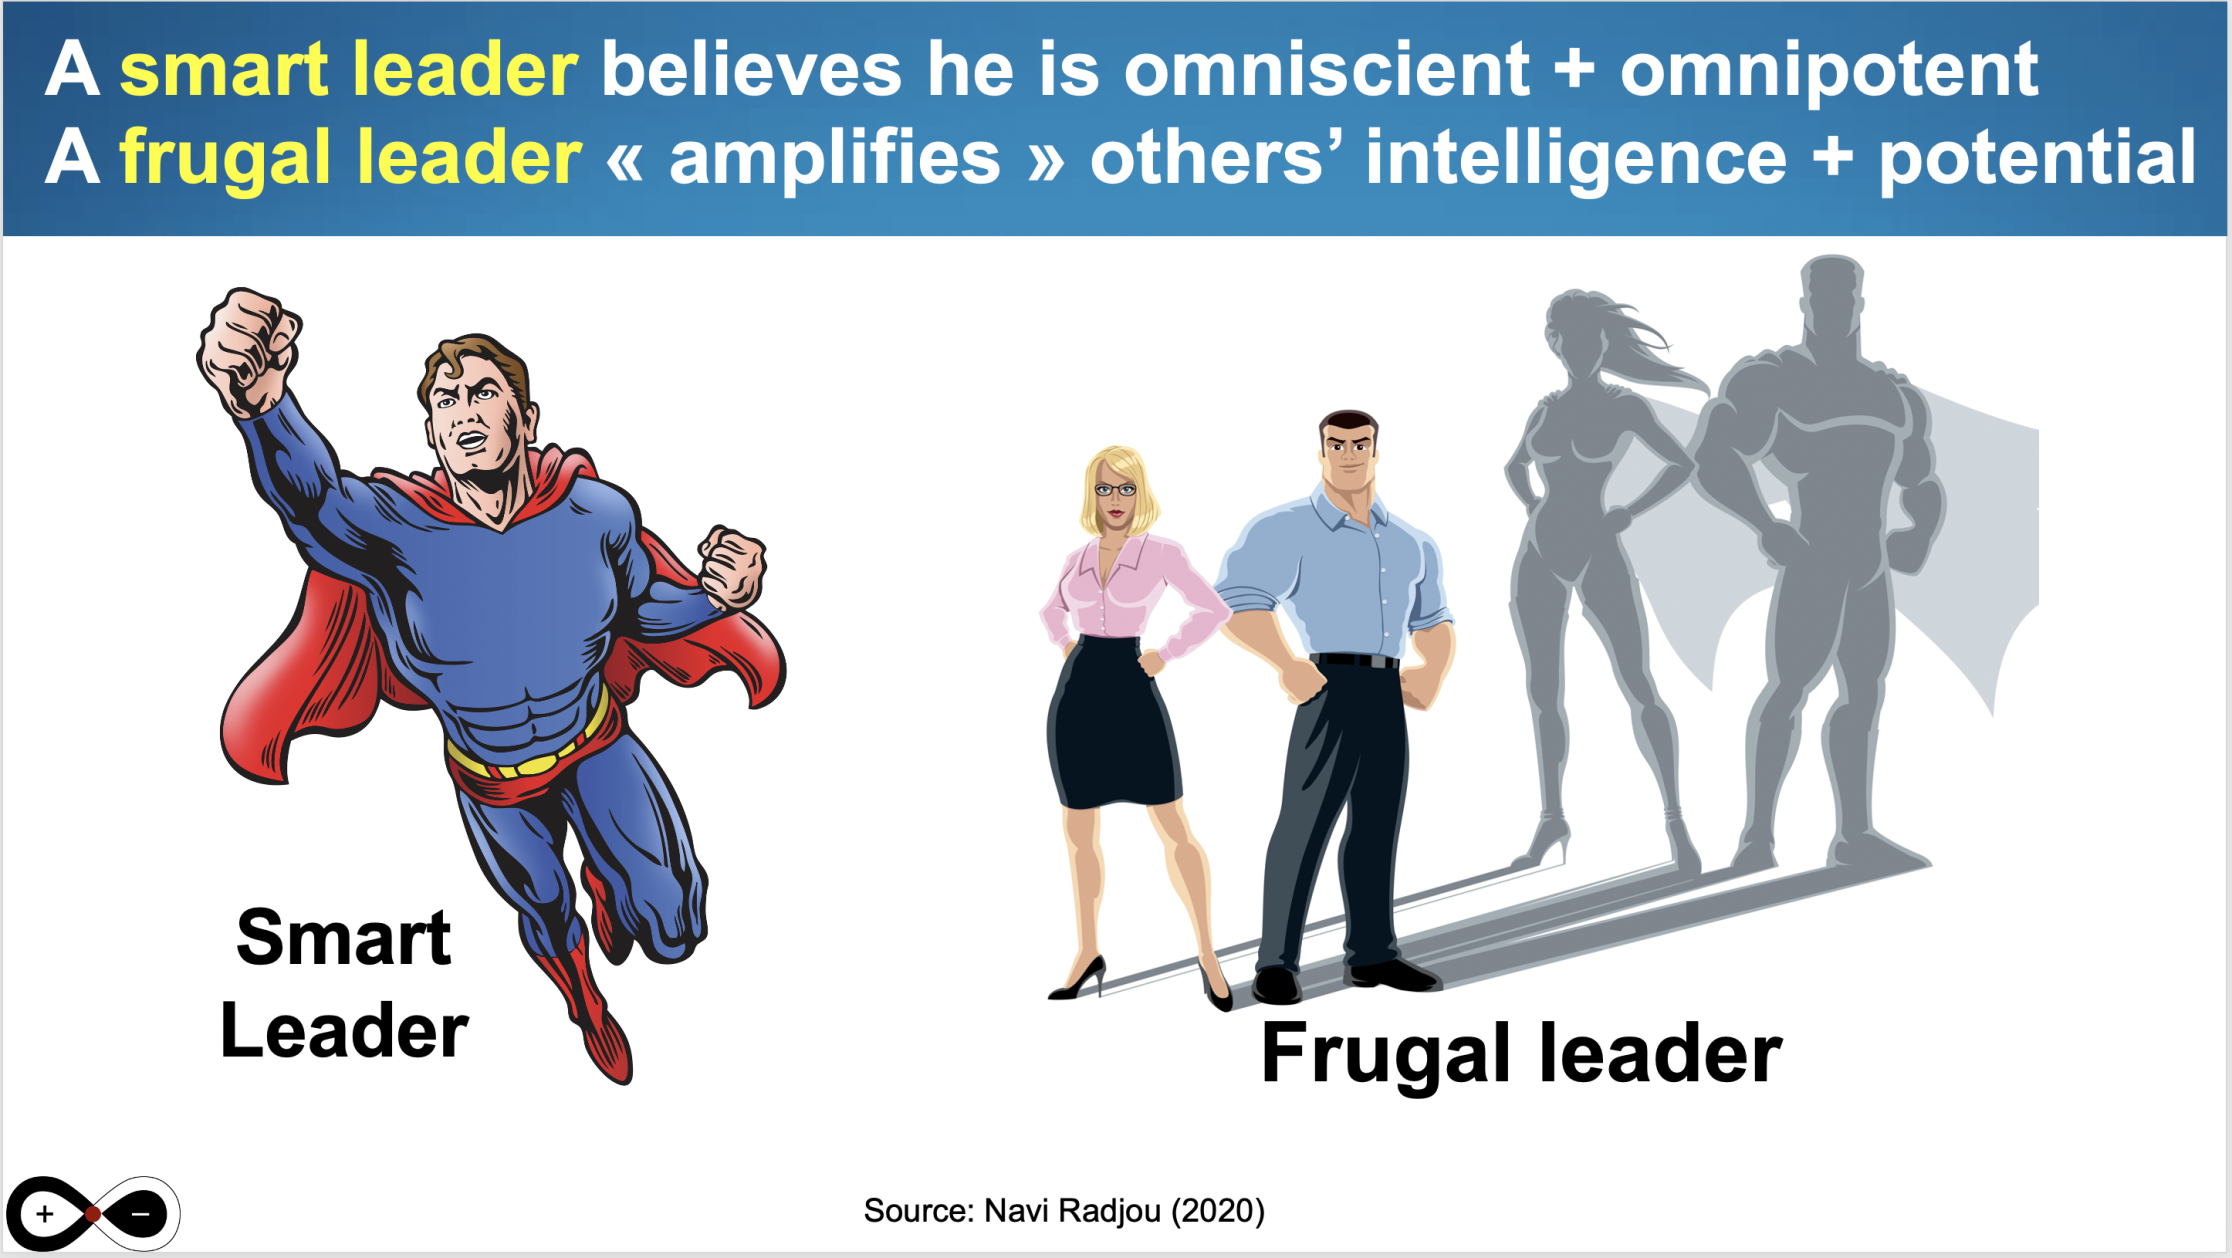 A frugal leader is self-effacing and amplifies the intelligence and potential of others